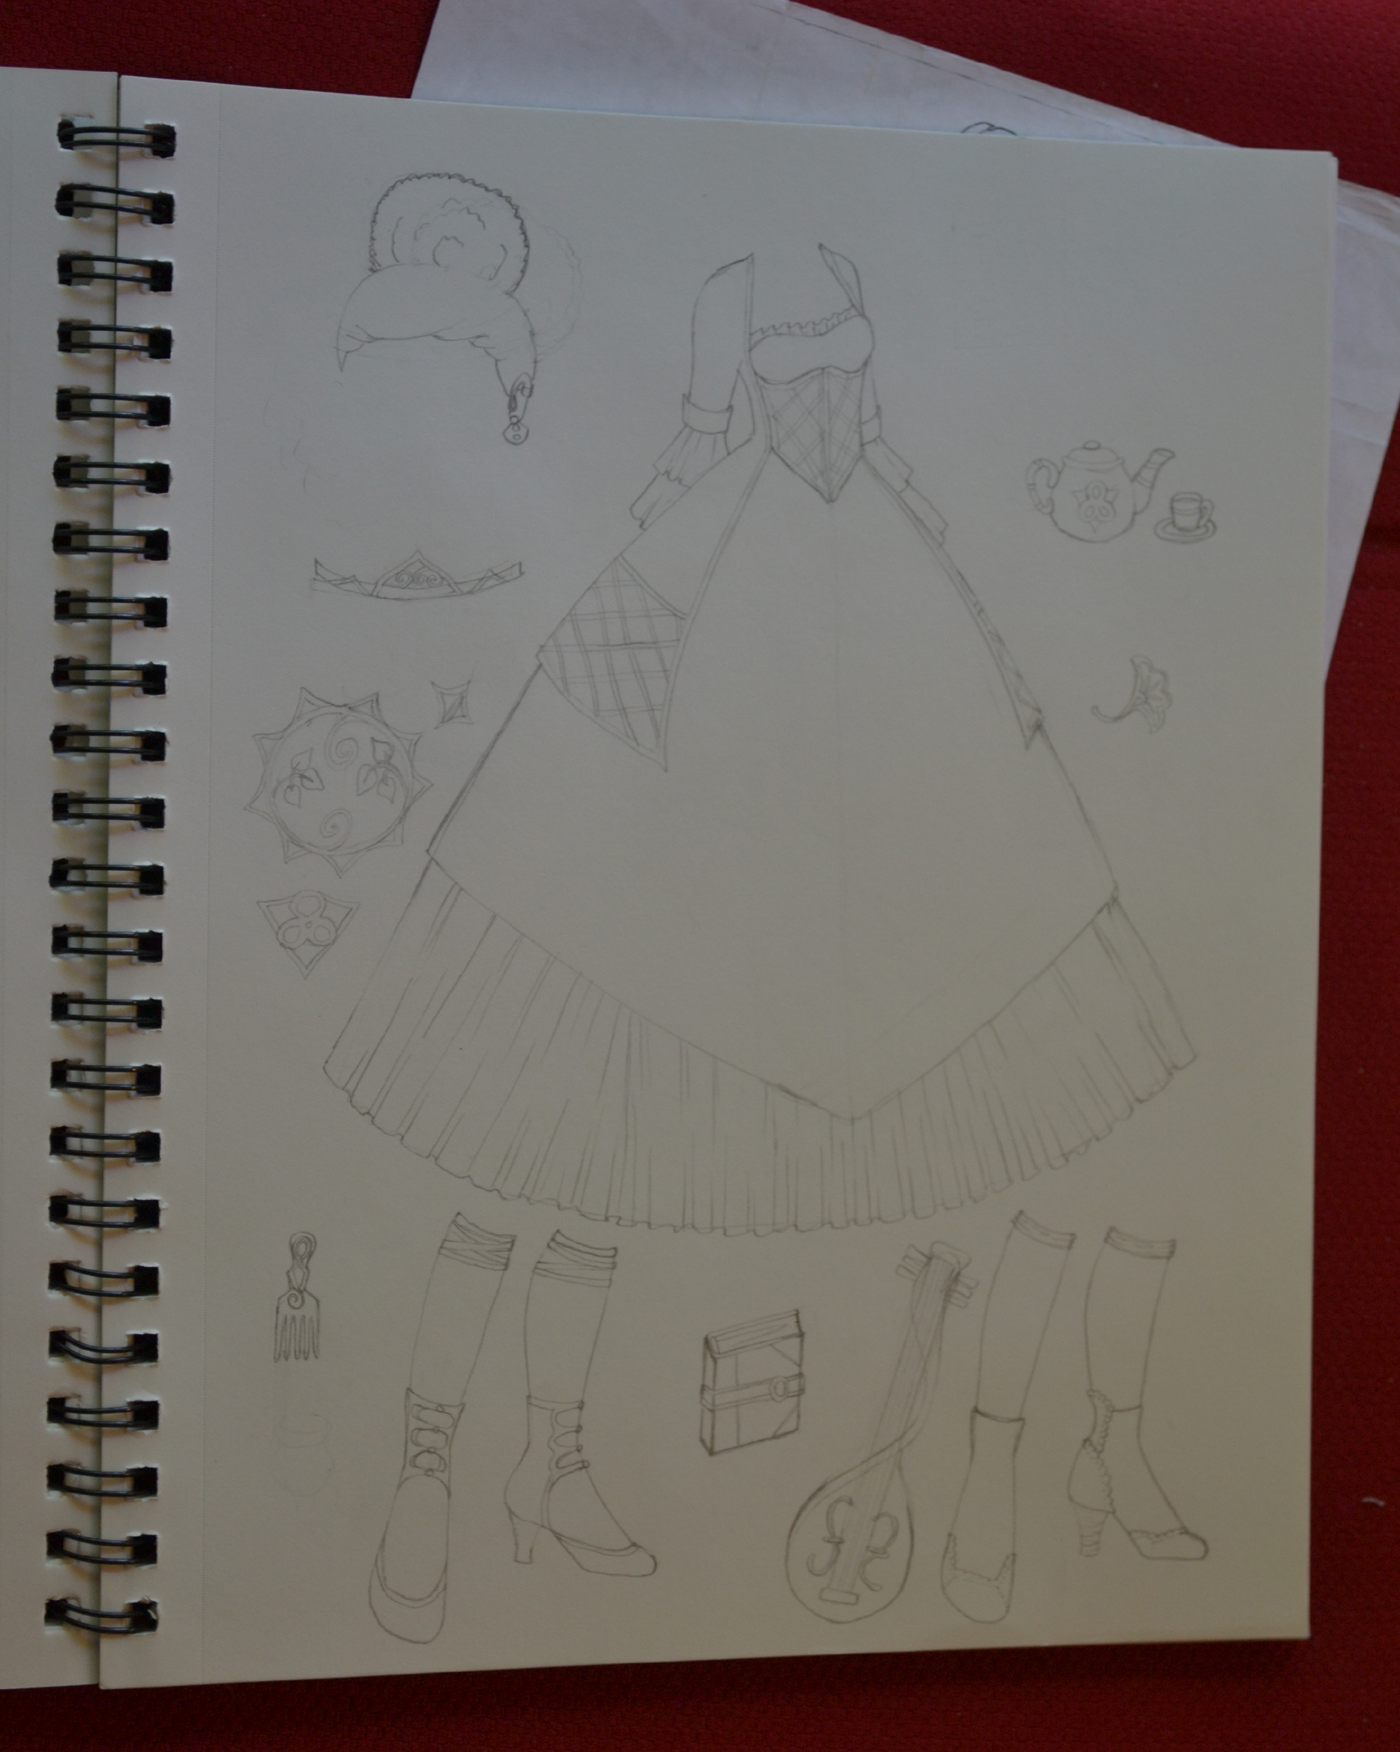 A penciled in sketch of a princess gown, crown, wig, instrument and two pairs of shoes. These penciled sketches are then inked to create a version for scanning.